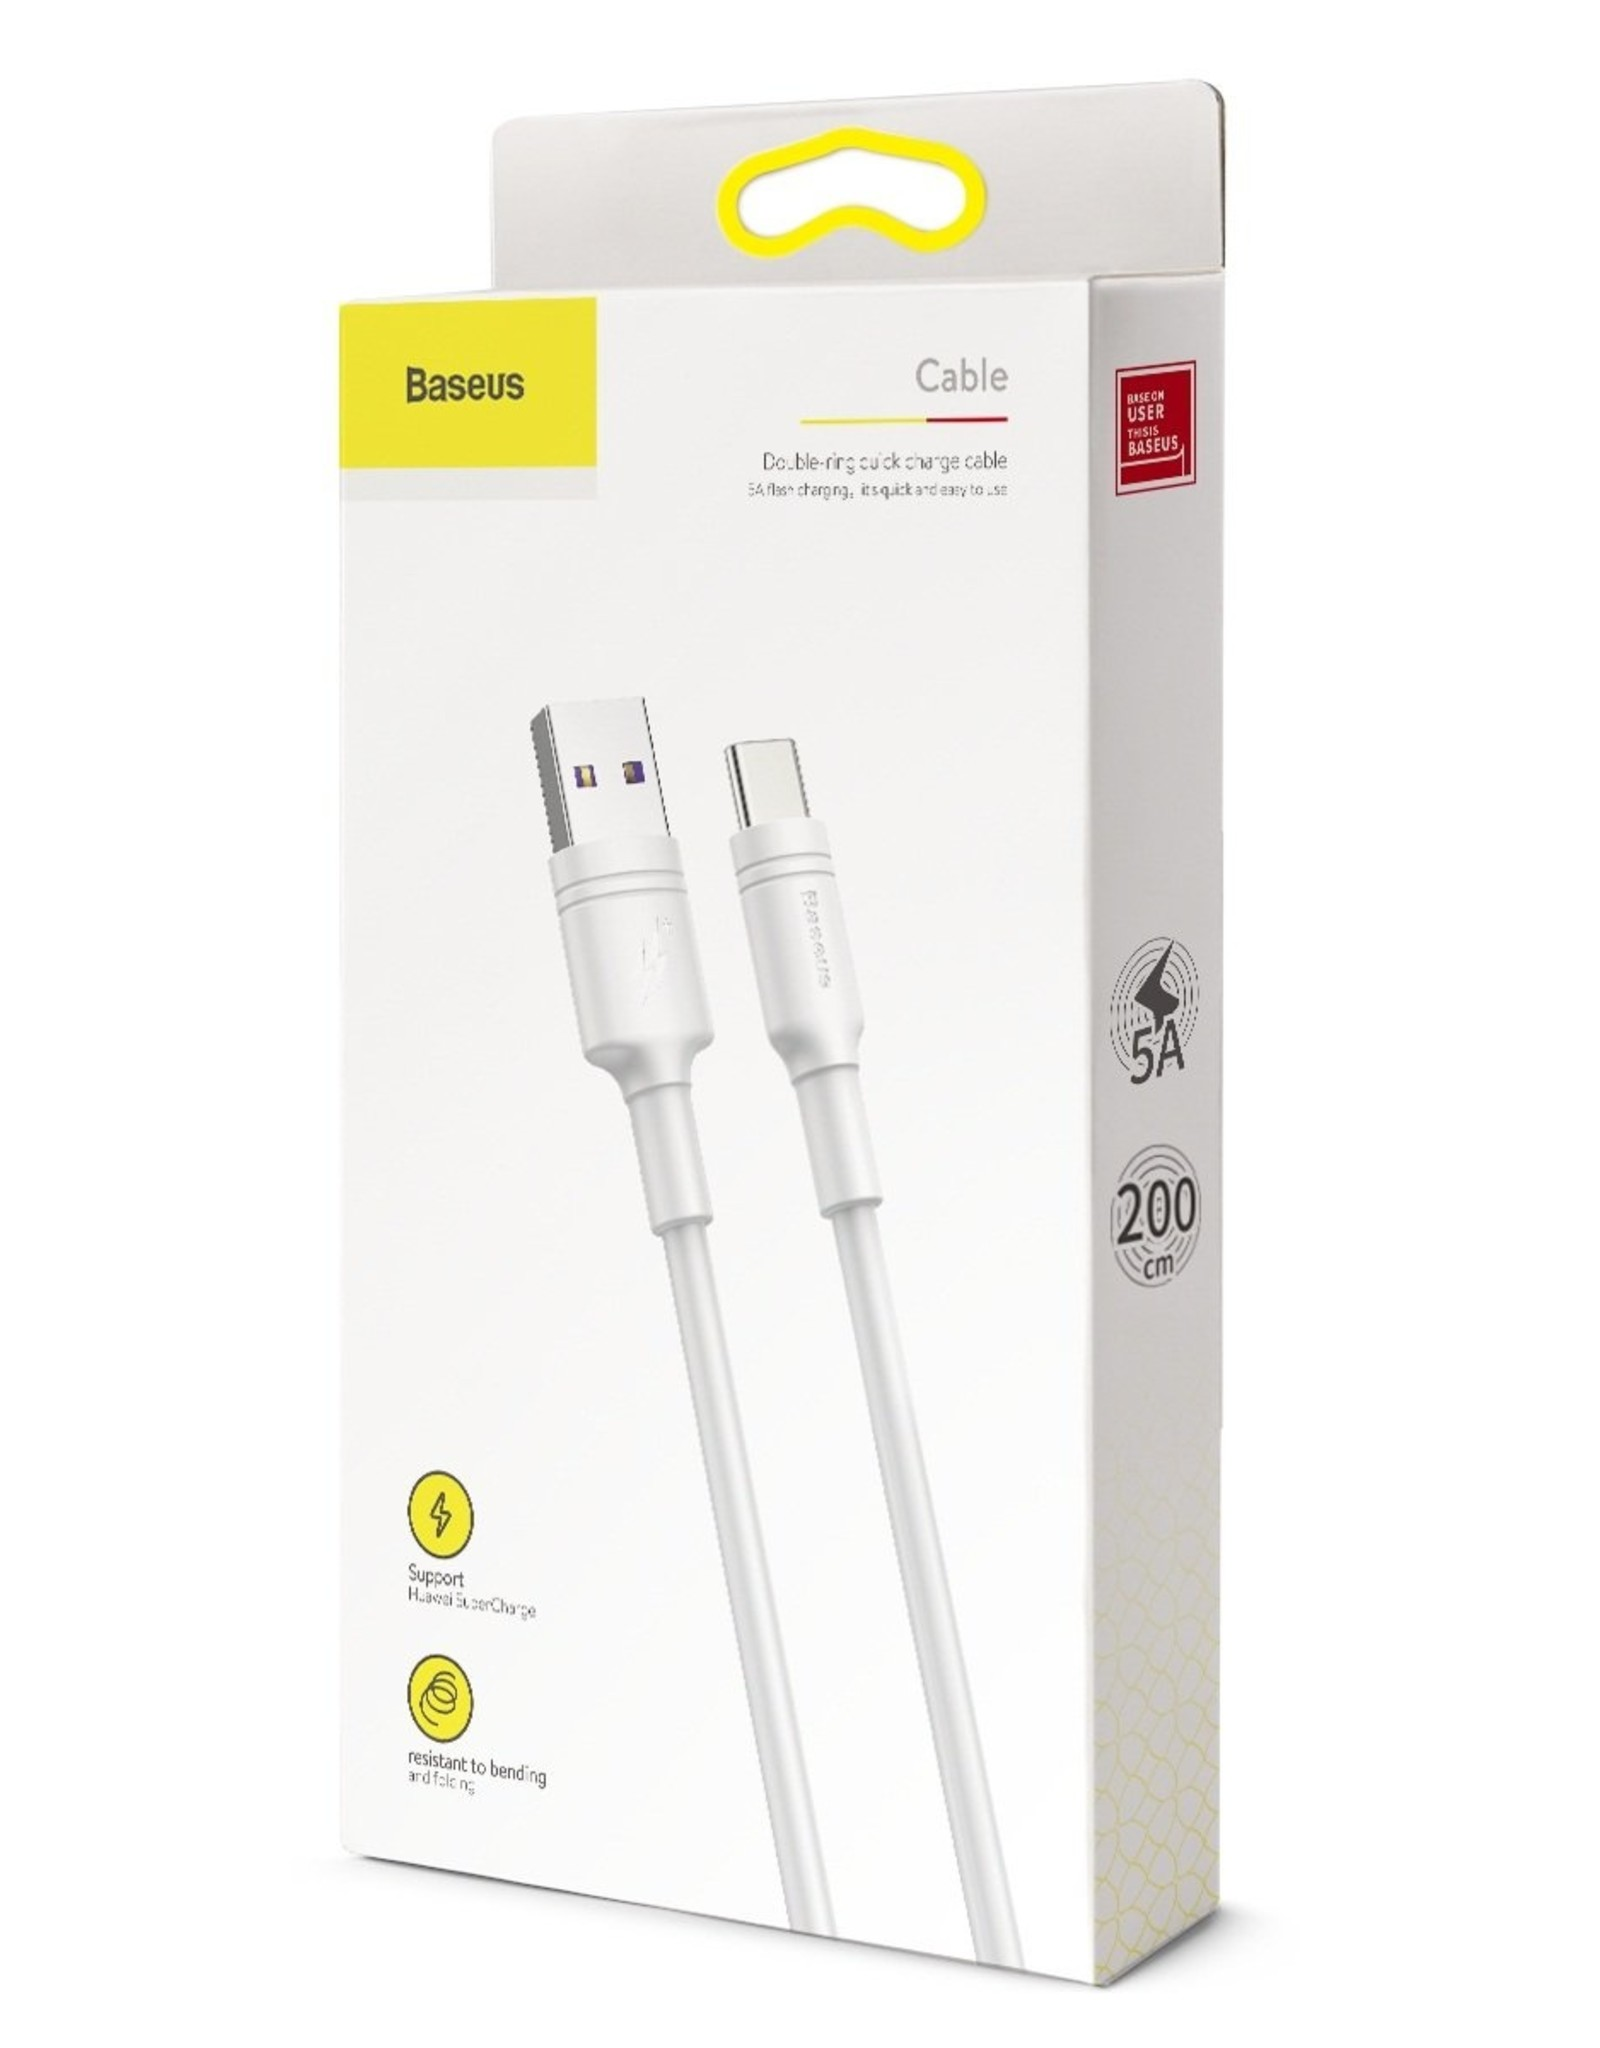 Baseus Baseus Double-Ring Huawei Quick Charge Cable USB For Type-C 5A 2m White